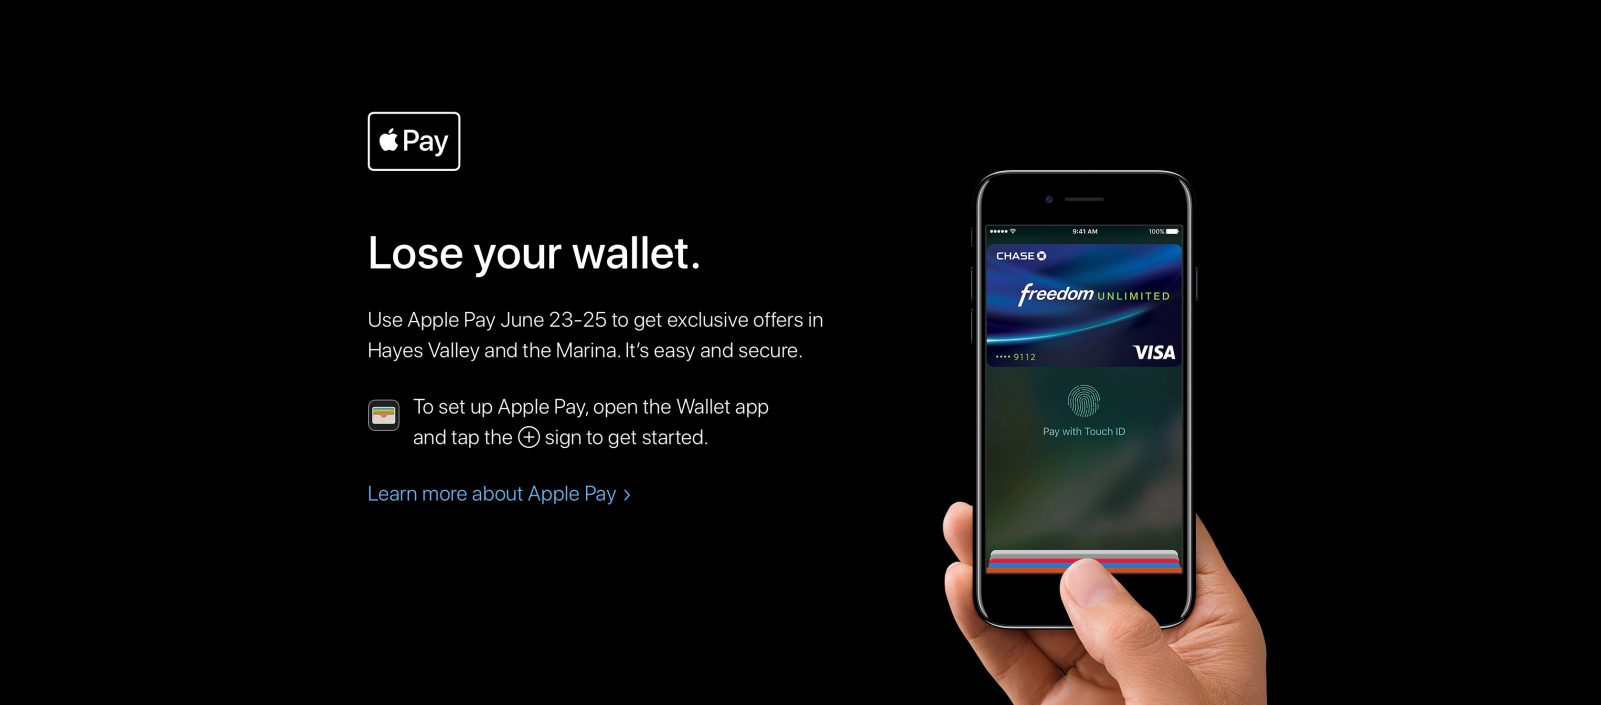 Apple Holding 'Lose Your Wallet' Shopping Event Promoting Apple Pay